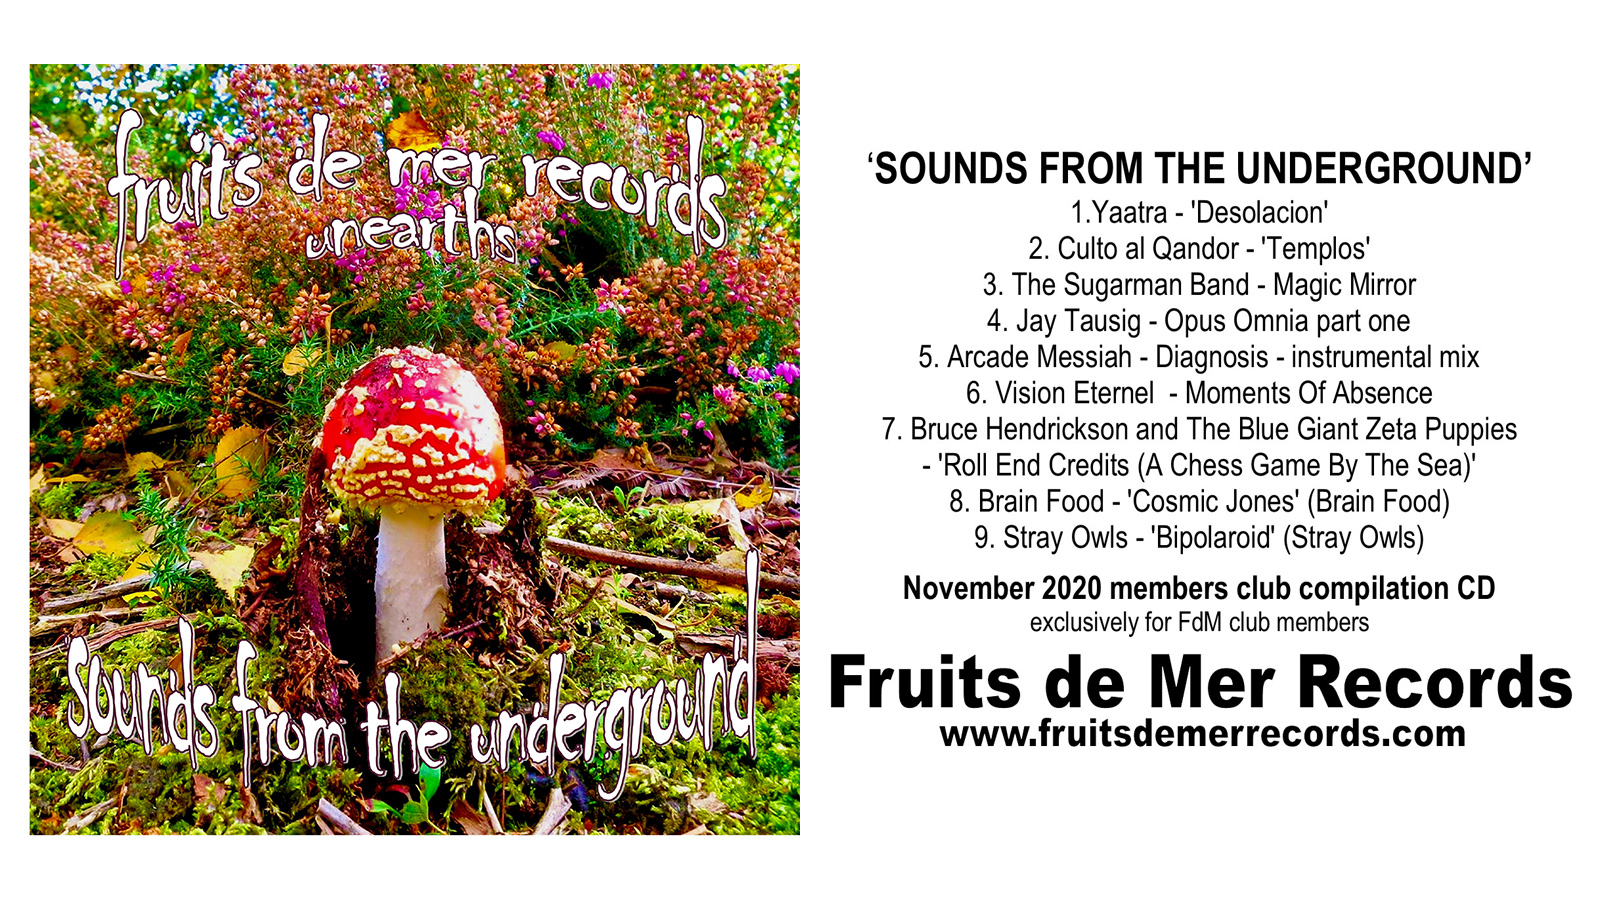 Fruits De Mer Records Unearths: Sounds From The Underground Compilation Is Released